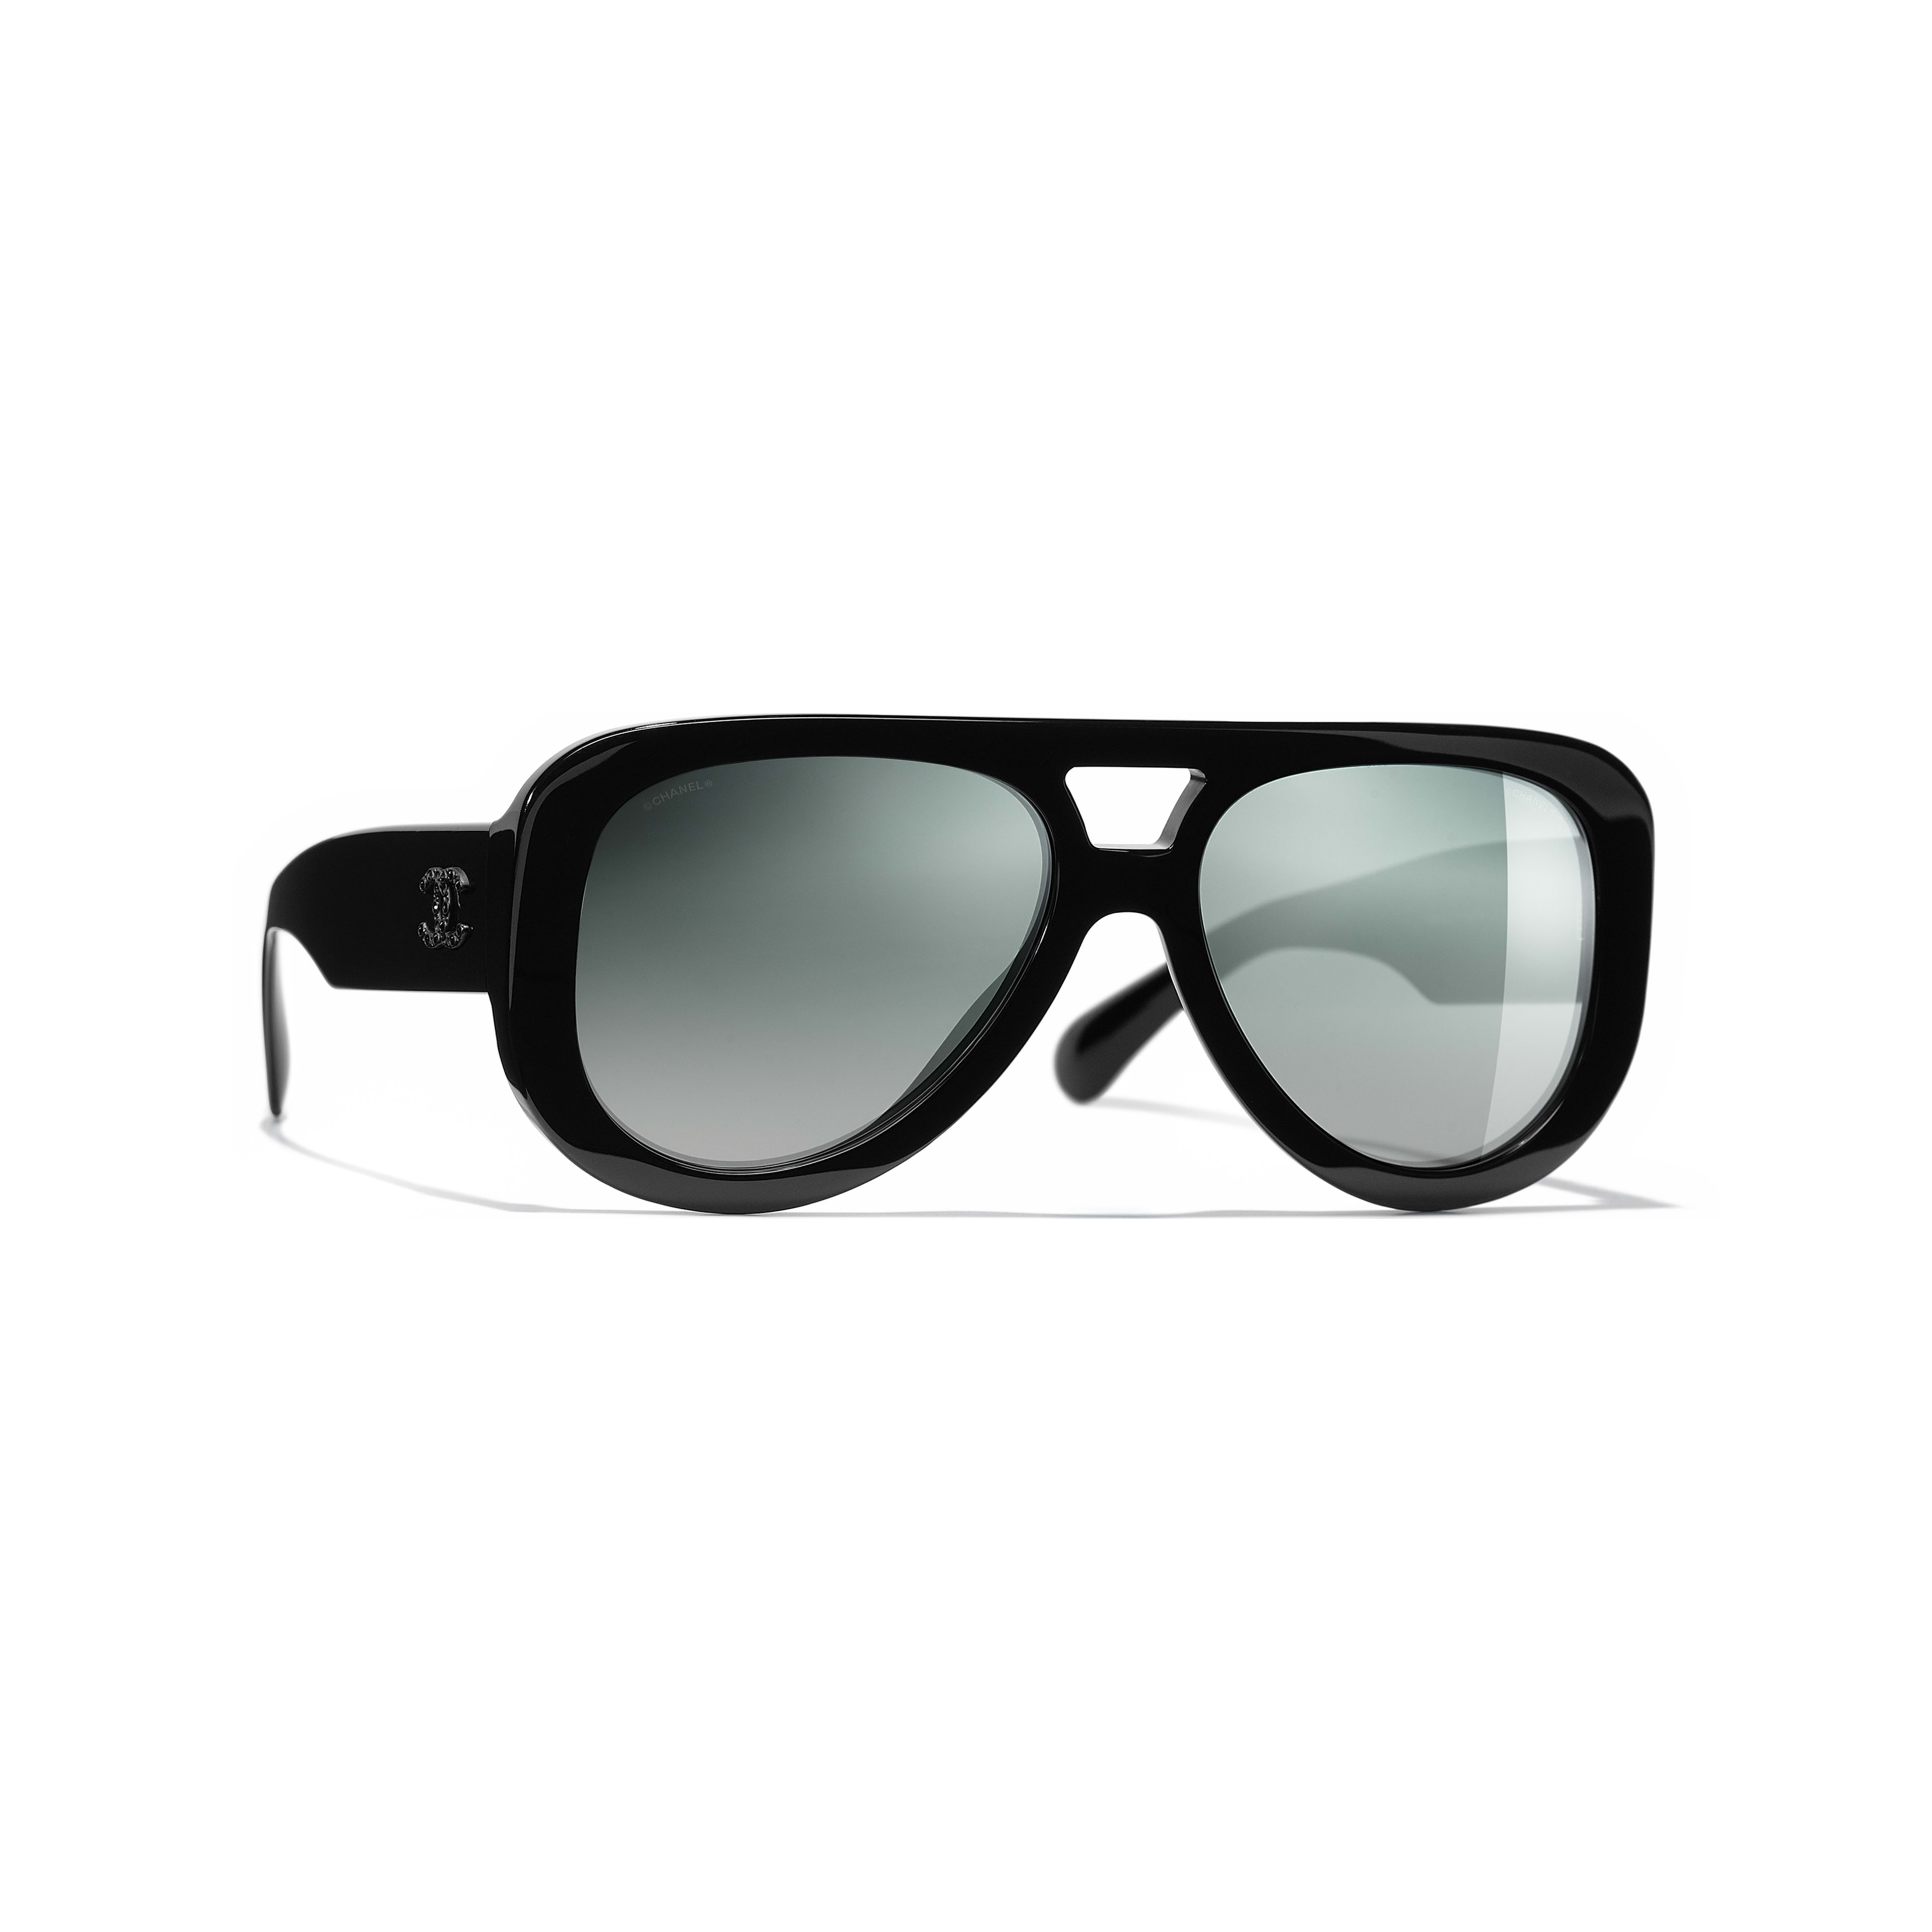 Pilot Sunglasses - Black - Acetate & Diamanté - CHANEL - Default view - see standard sized version